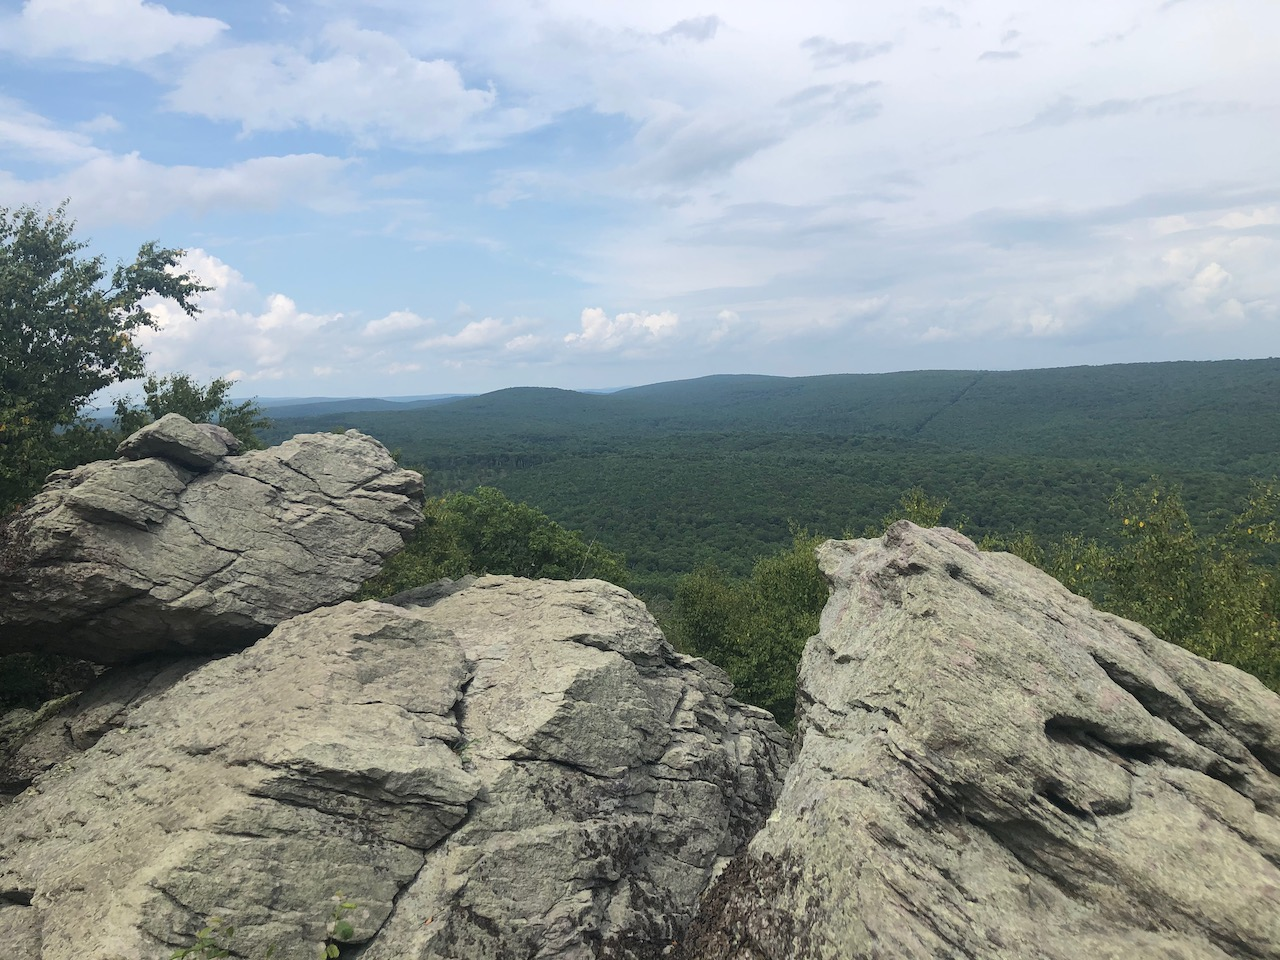 Photo of the view from Chimney Rocks